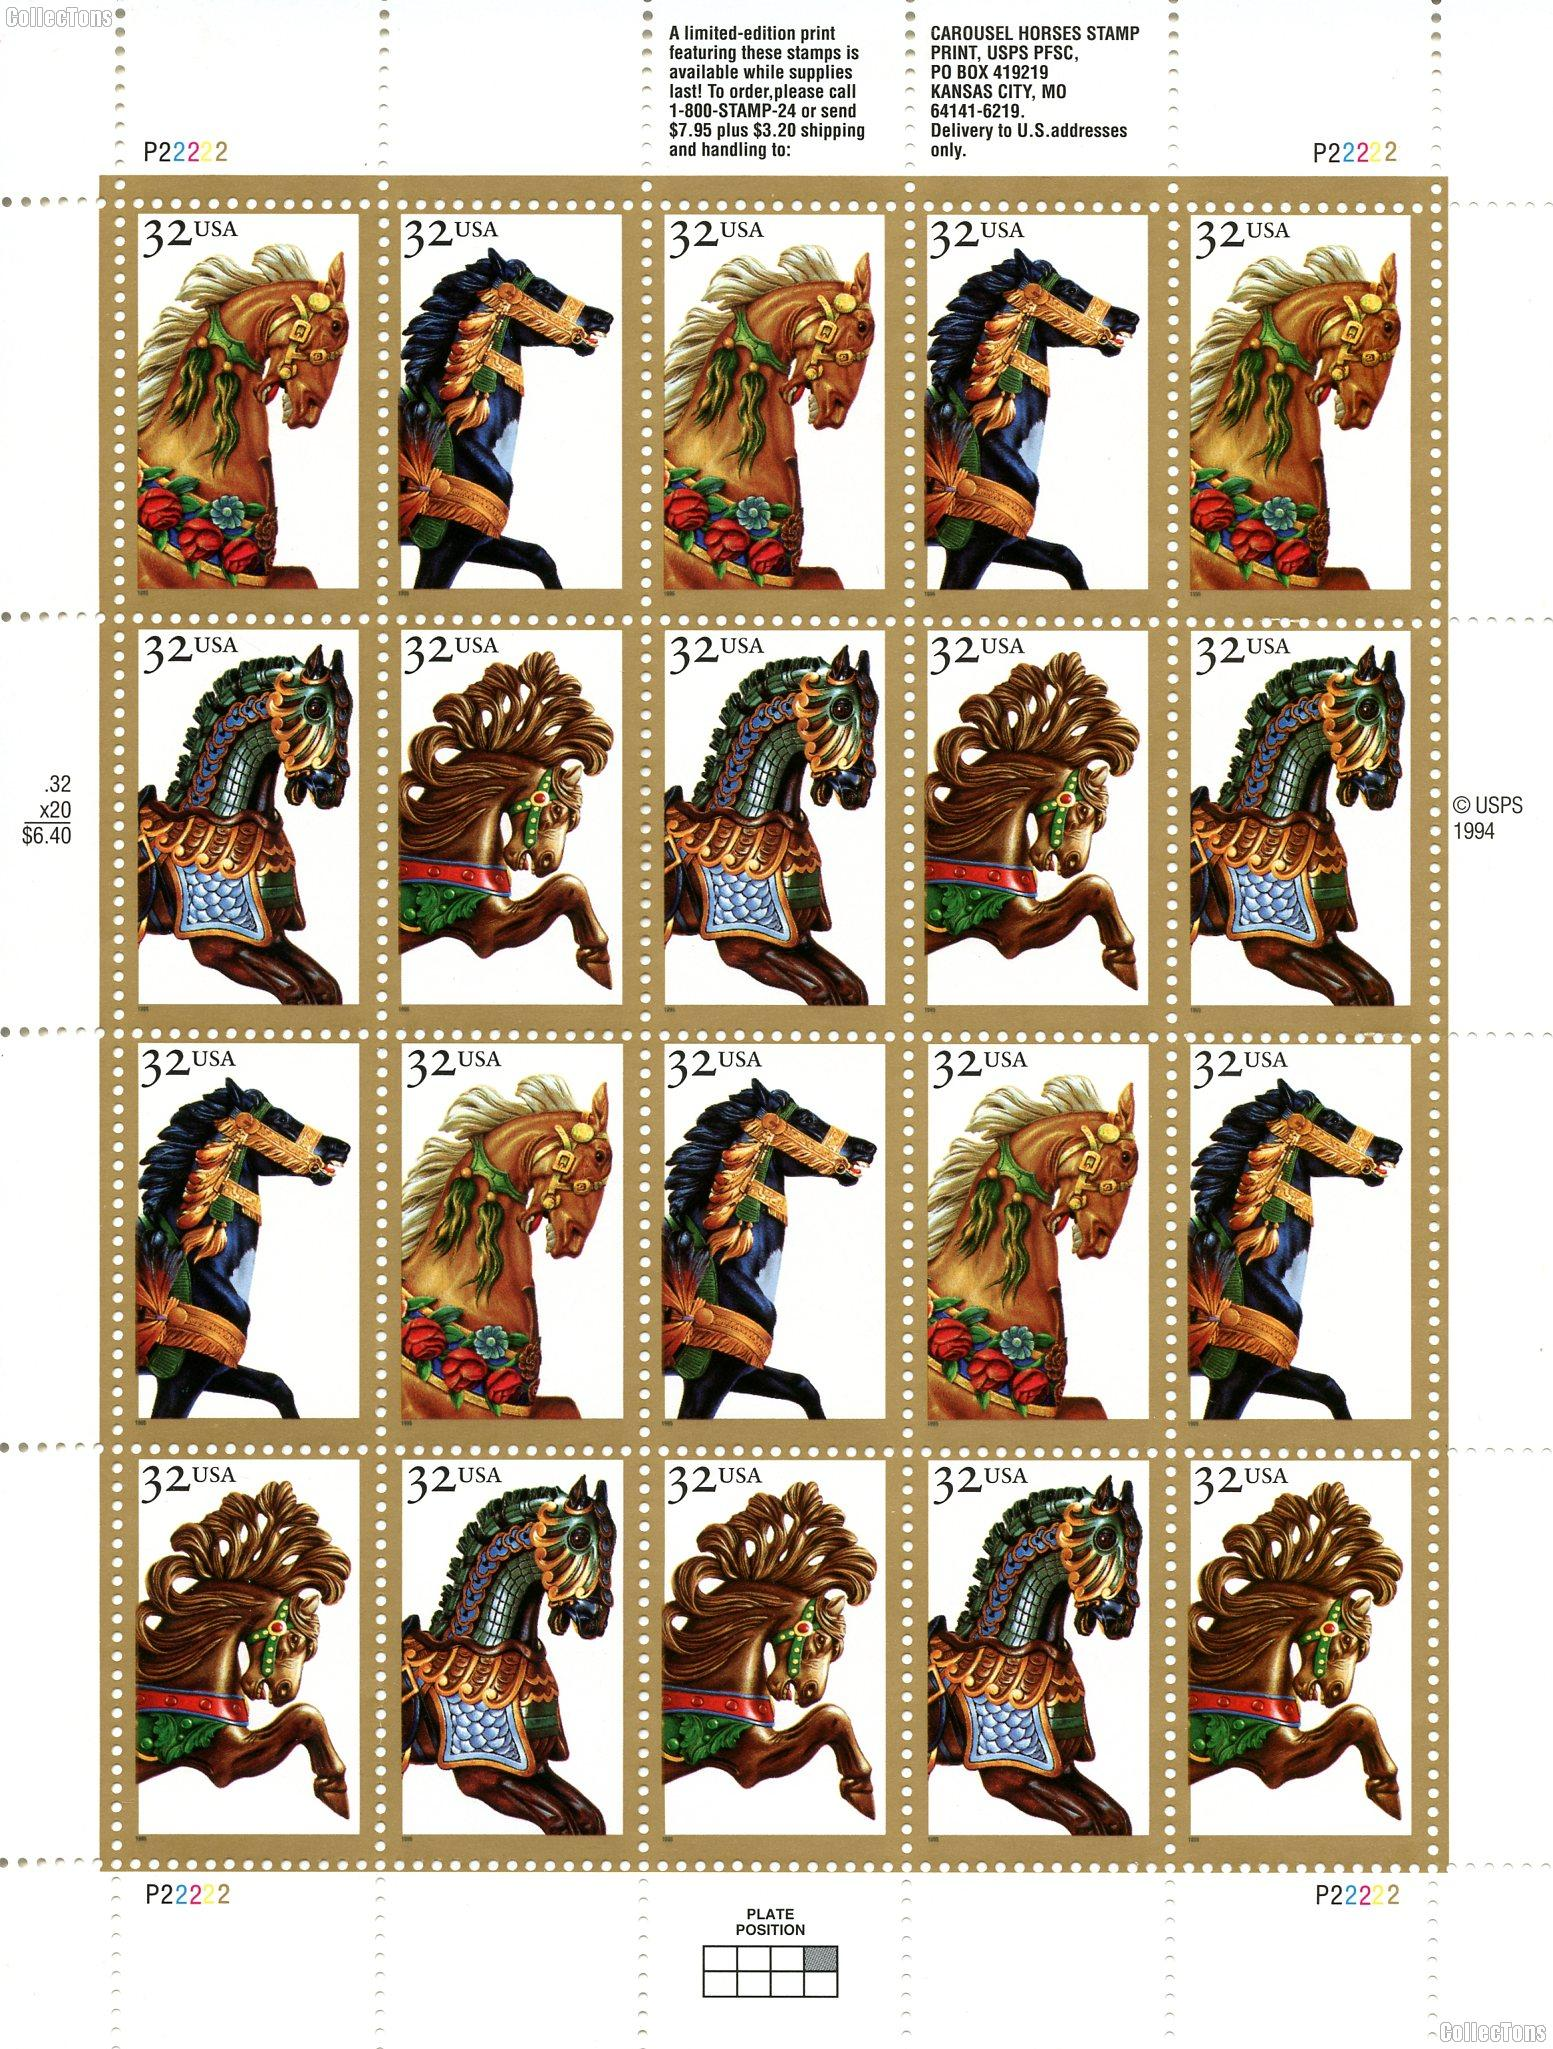 1995 Carousel Horses 32 Cent US Postage Stamp MNH Sheet of 20 Scott #2976-2979